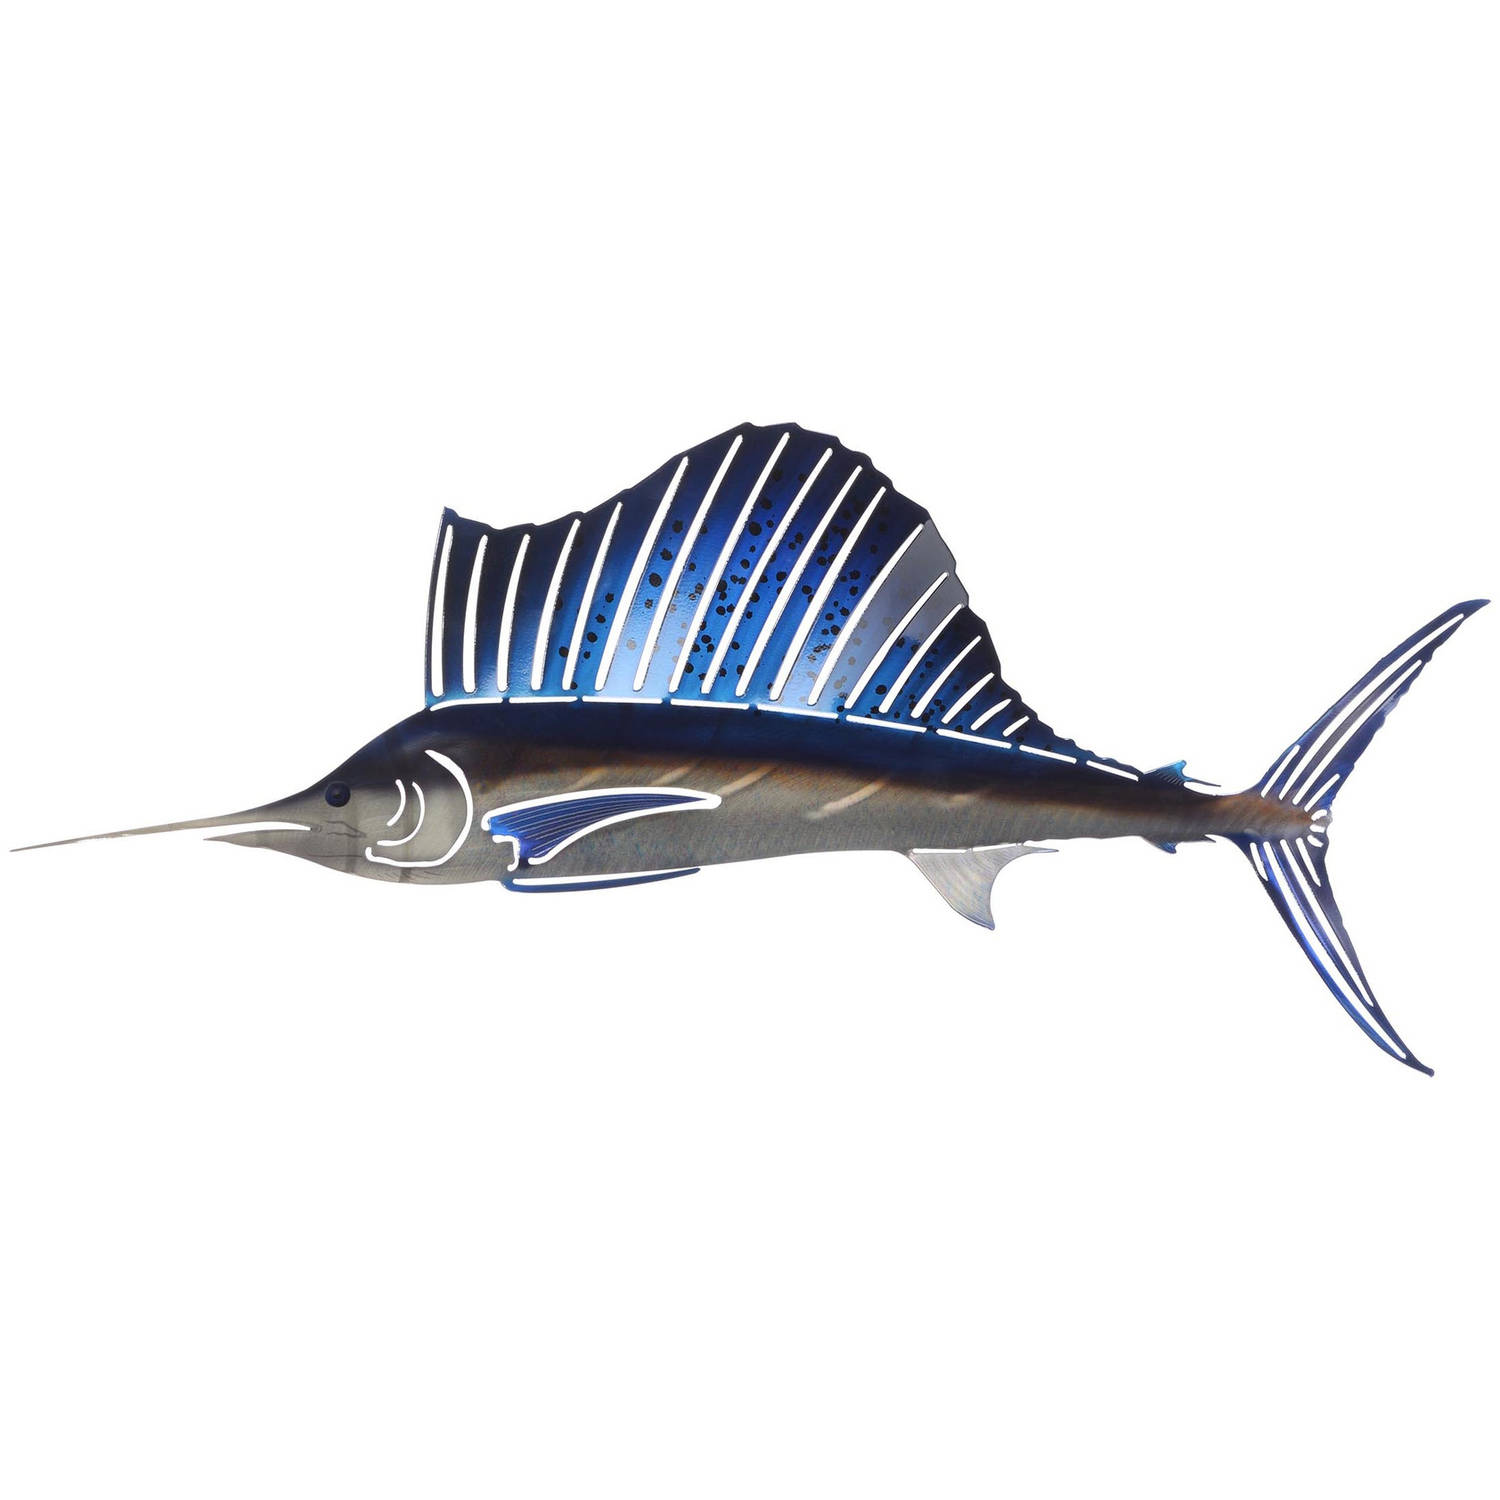 3D Large Sailfish Metal Wall Art By Next Innovations